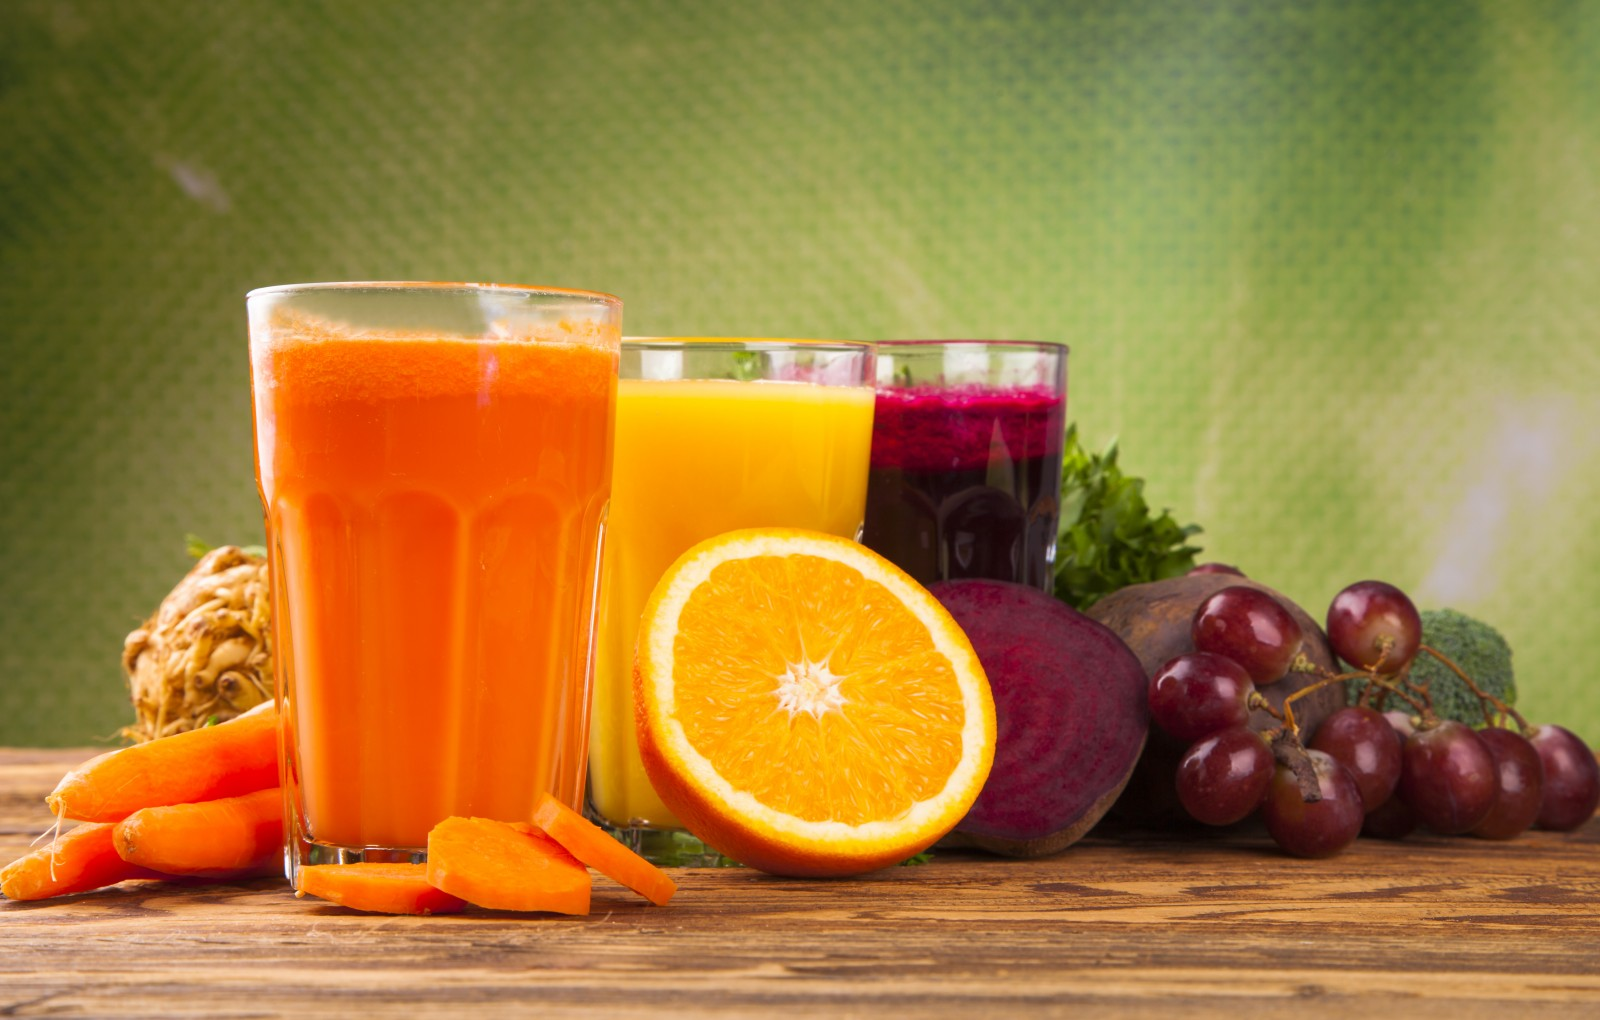 http://topnaturalremedies.net/healthy-juice-recipes/fresh-juices-boost-immunity-recipes-benefits/